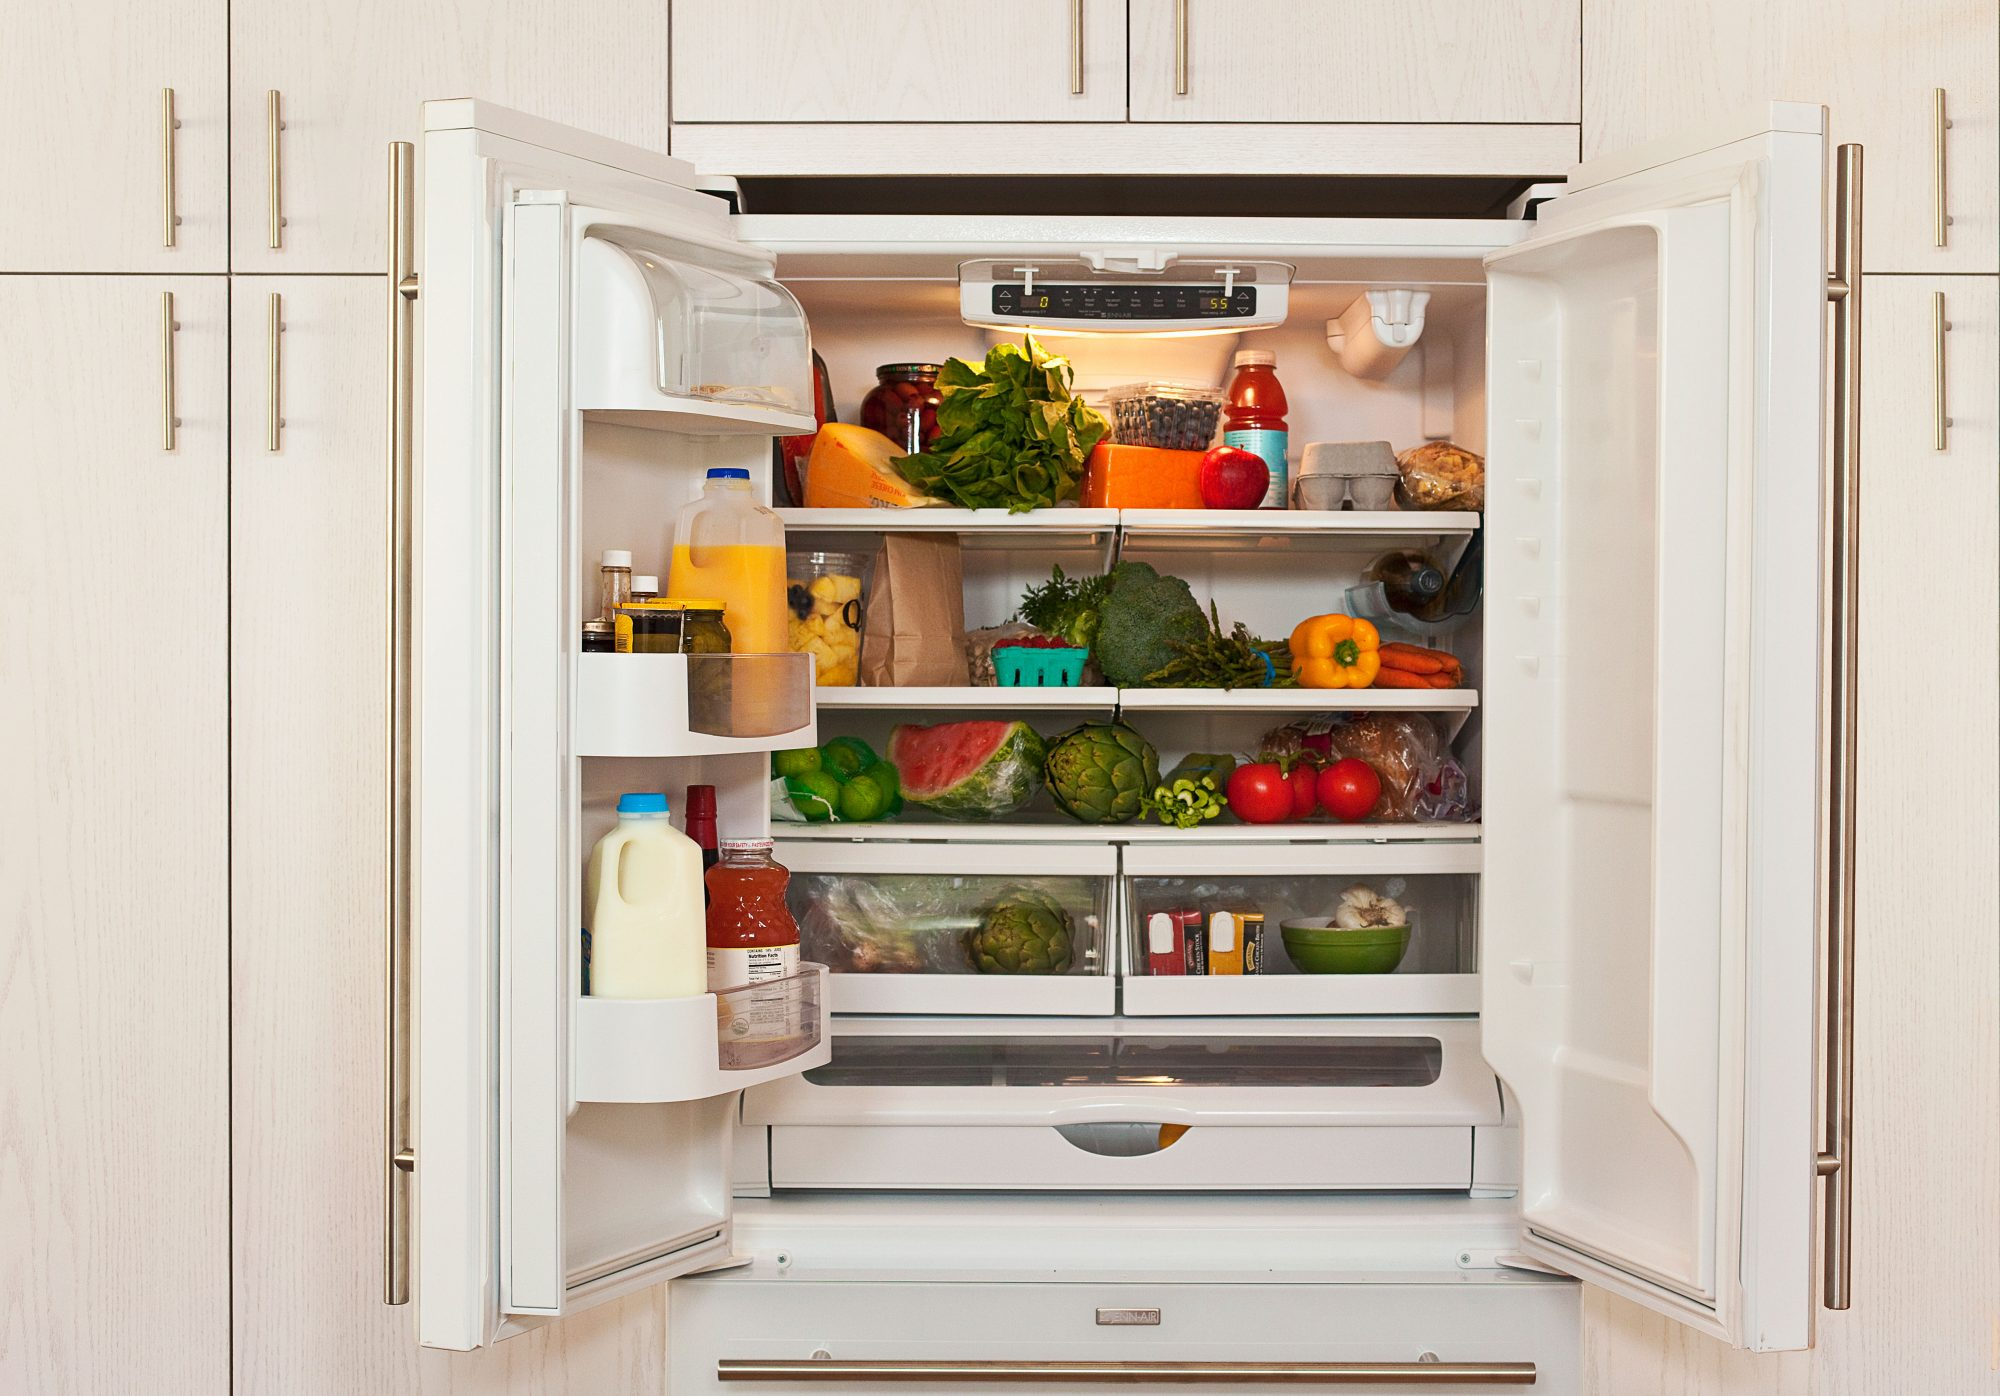 Refrigerator Fruits and Vegetables with Cabinet Fronts